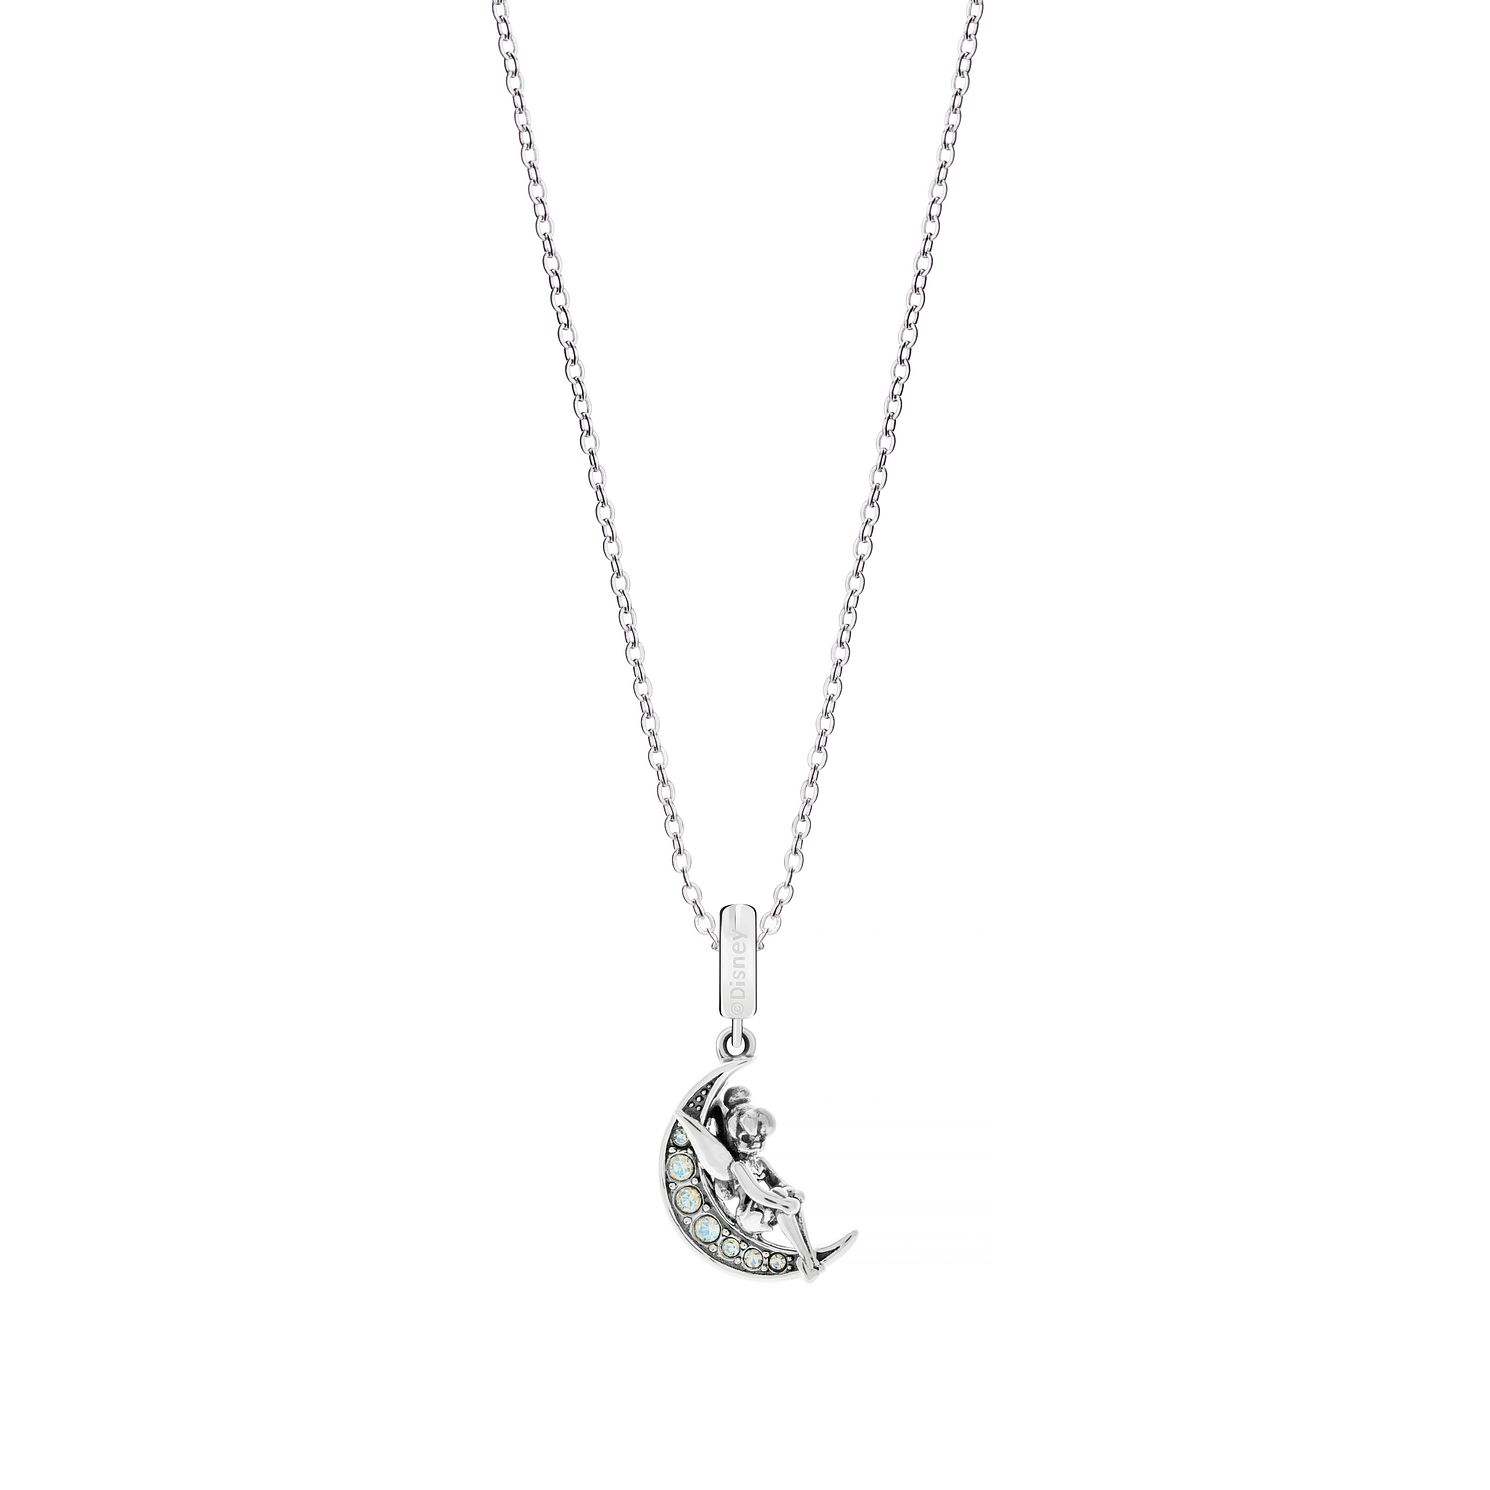 Chamilia Disney Sterling Silver Moonlit Tinkerbell Necklace - Product number 8128448